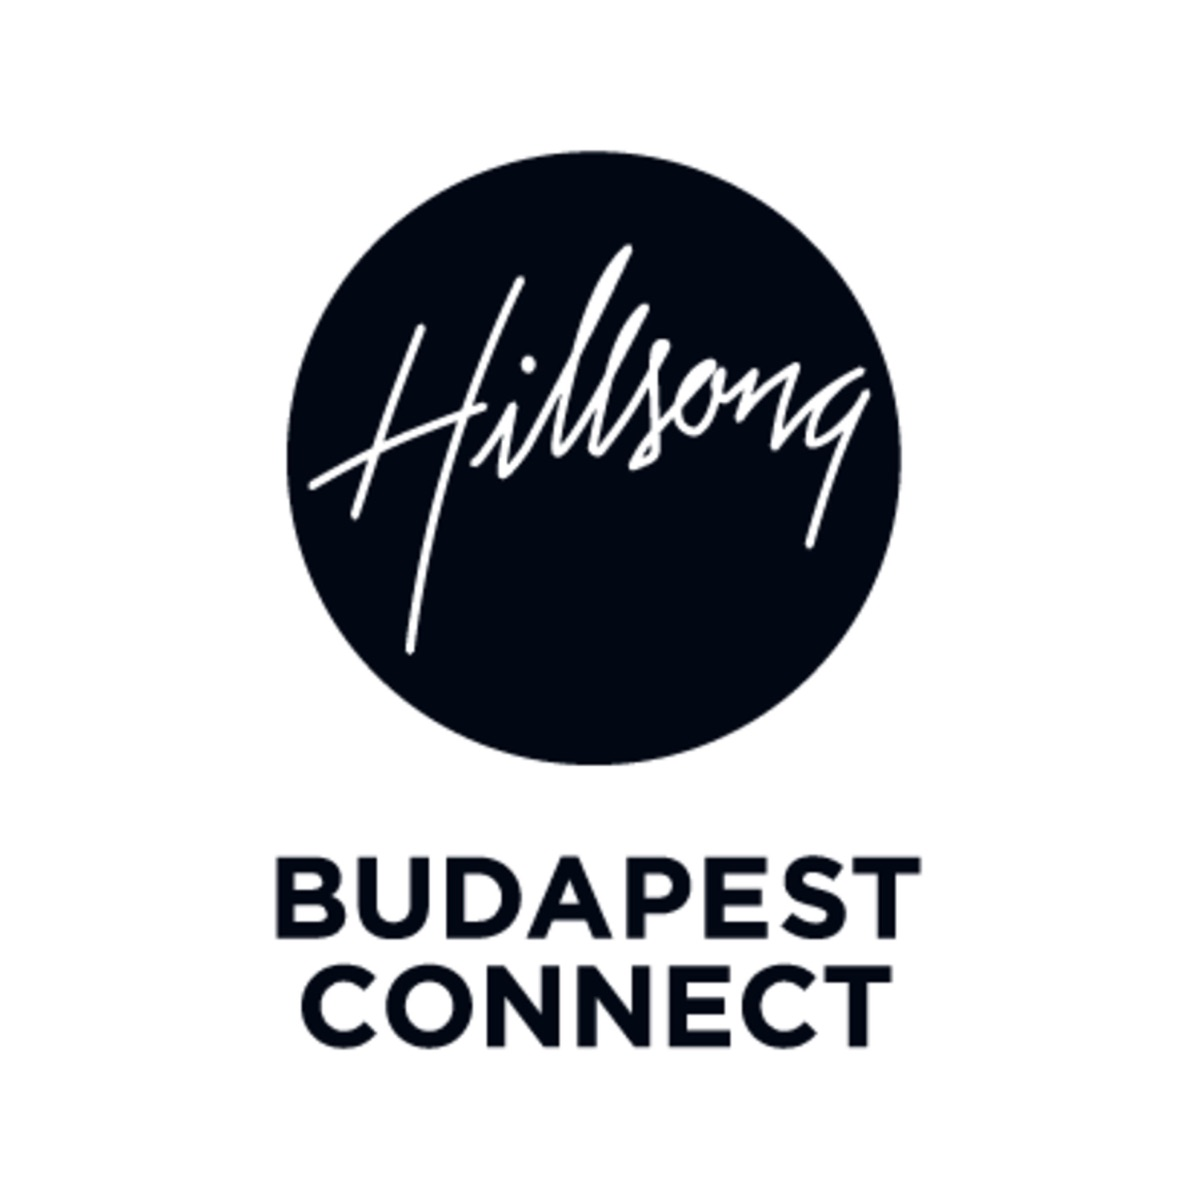 Hillsong Budapest Connect